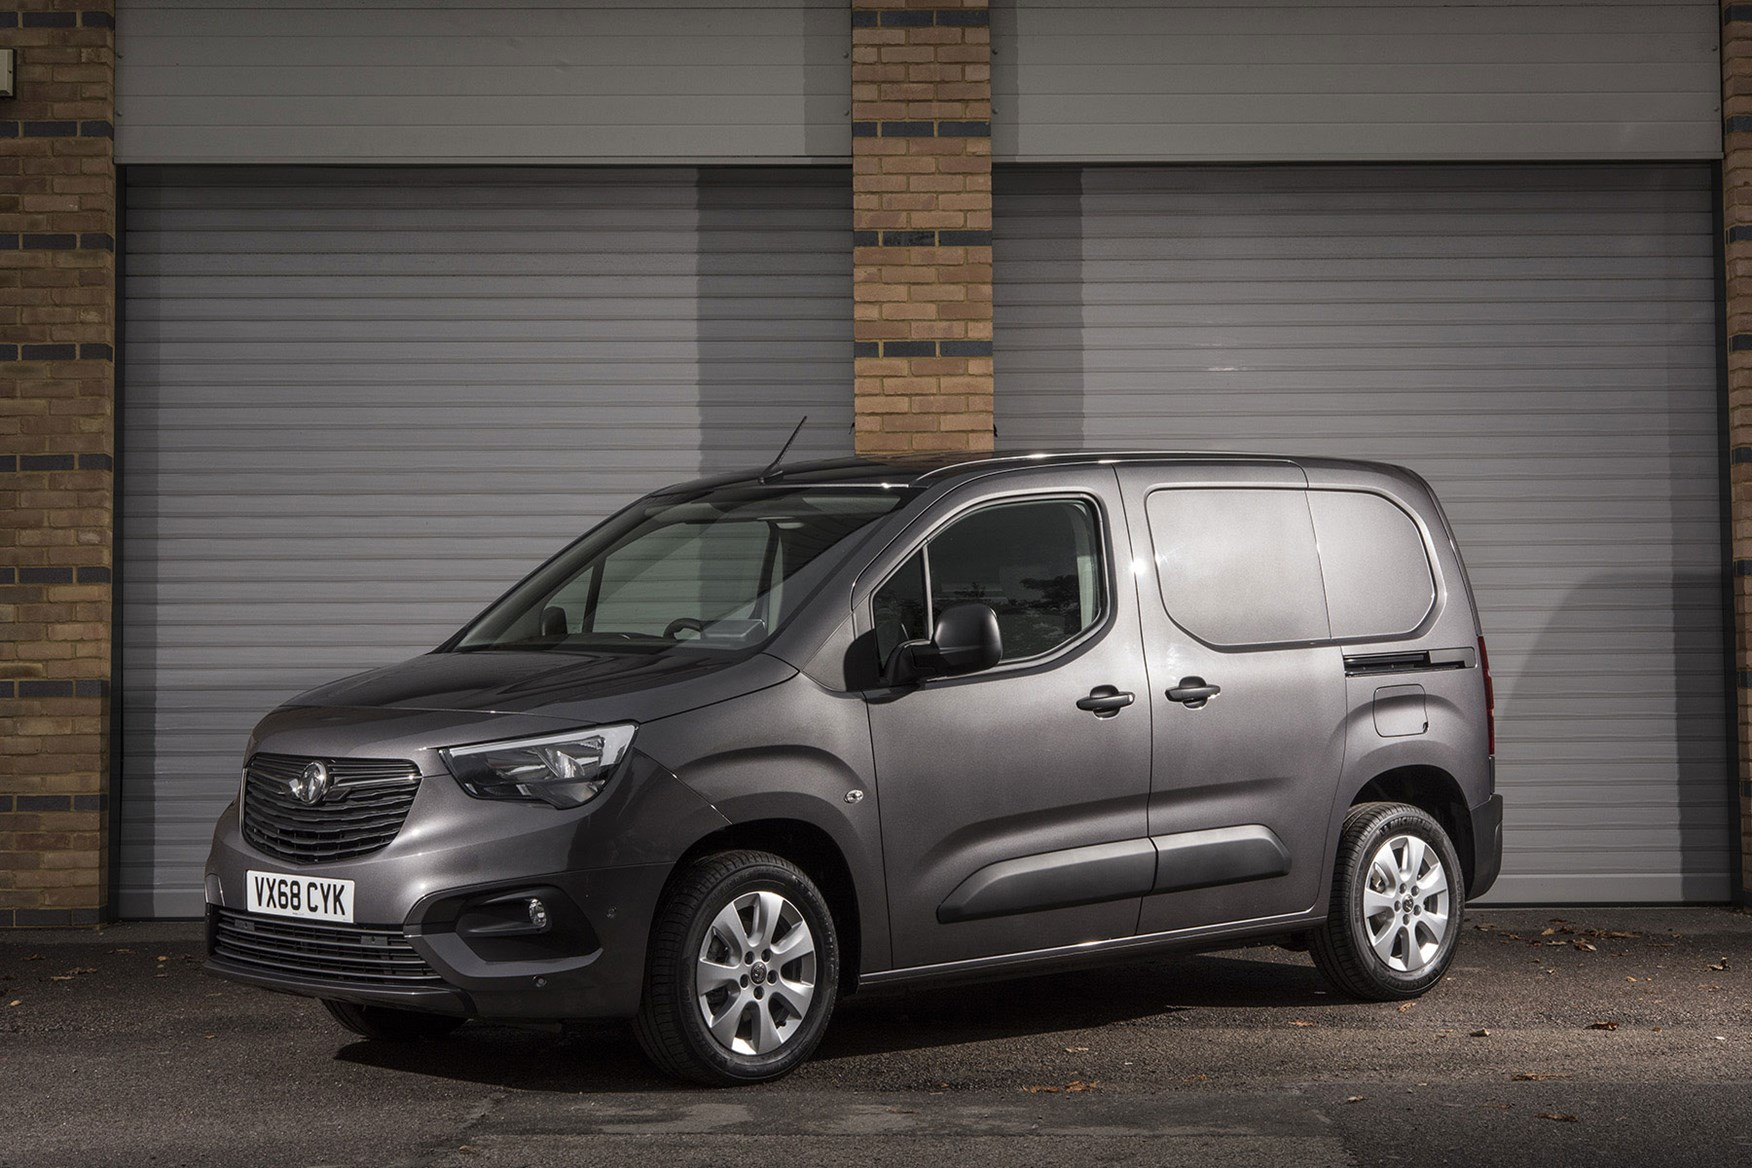 Vauxhall Combo 2019 review - grey, front view